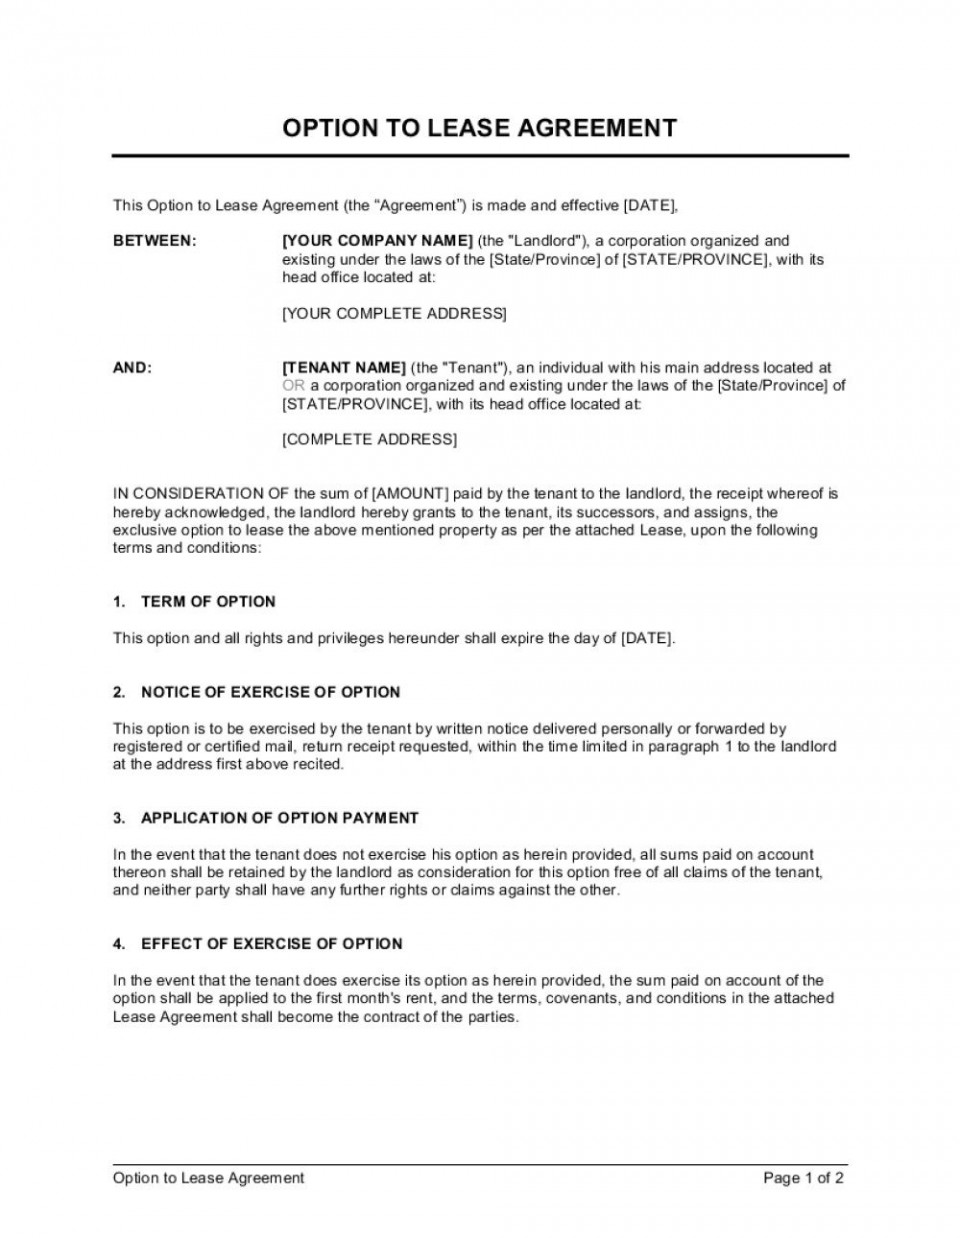 008 Dreaded Rent To Own Agreement Template Photo  Contract Florida South Africa960